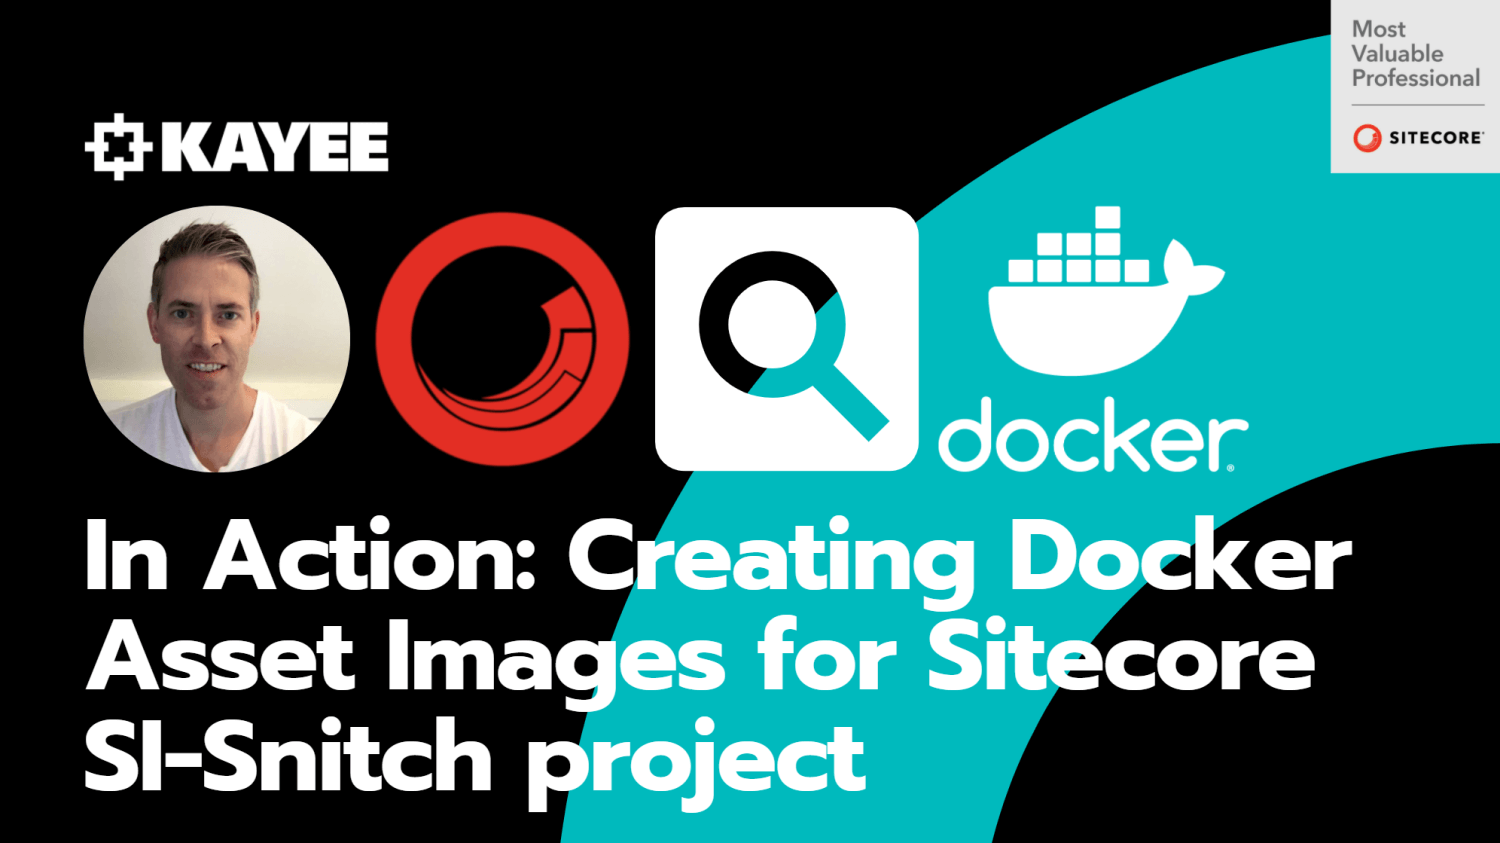 In Action: Creating Docker Asset Images for Sitecore SI-Snitch project